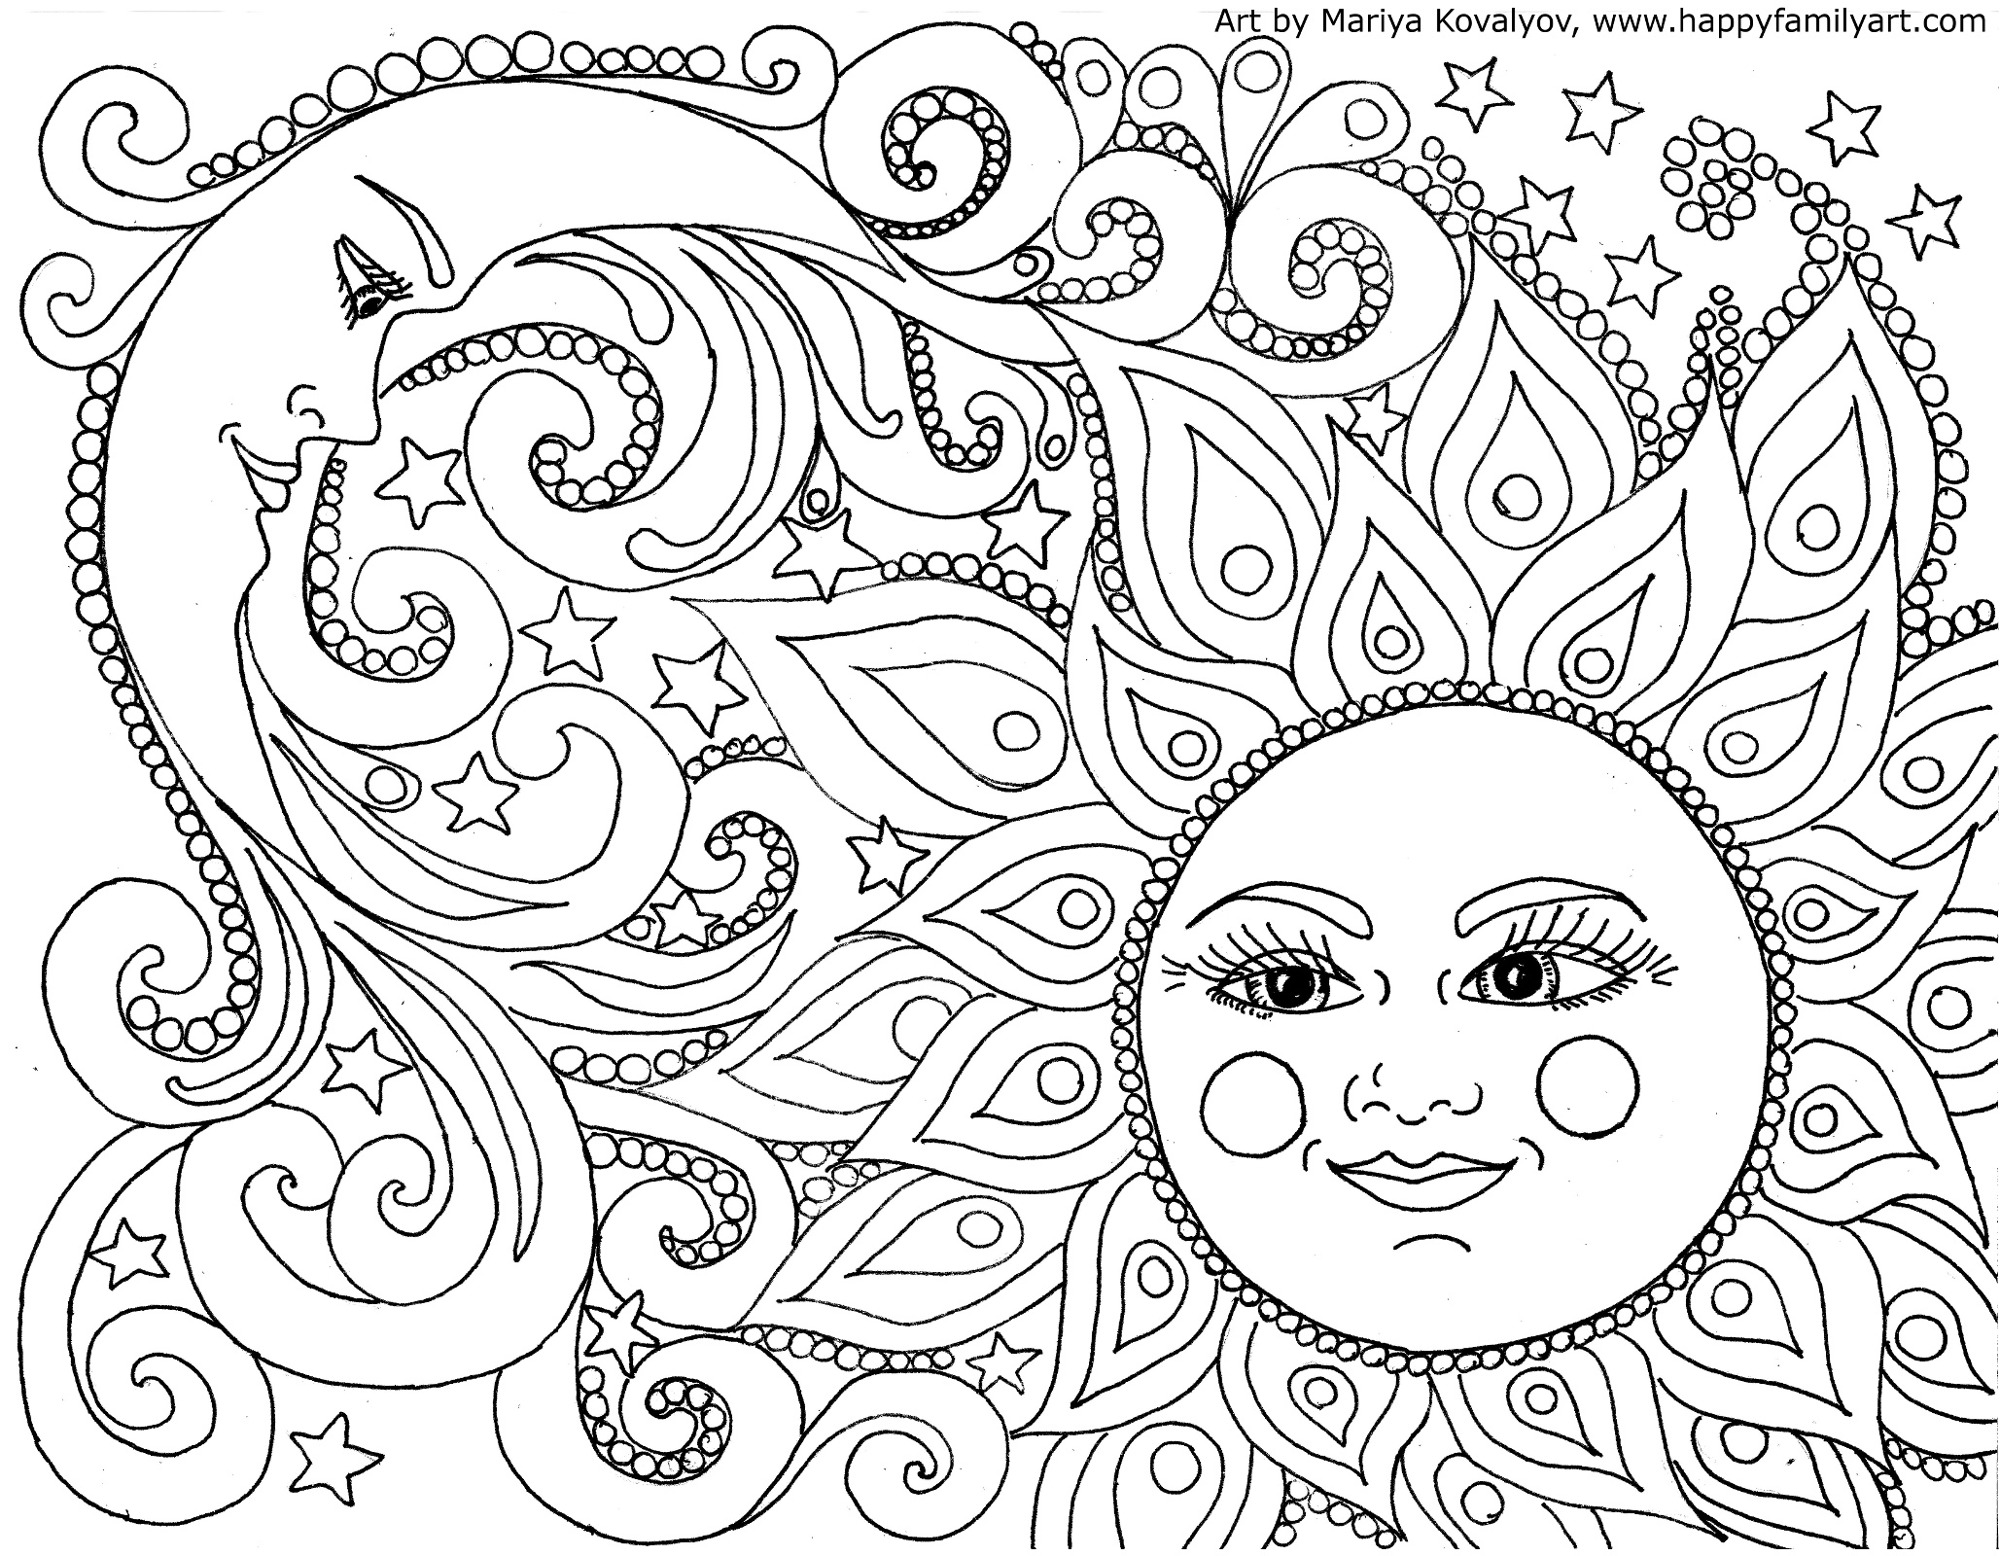 Hy Family Art Original And Fun Coloring Pages